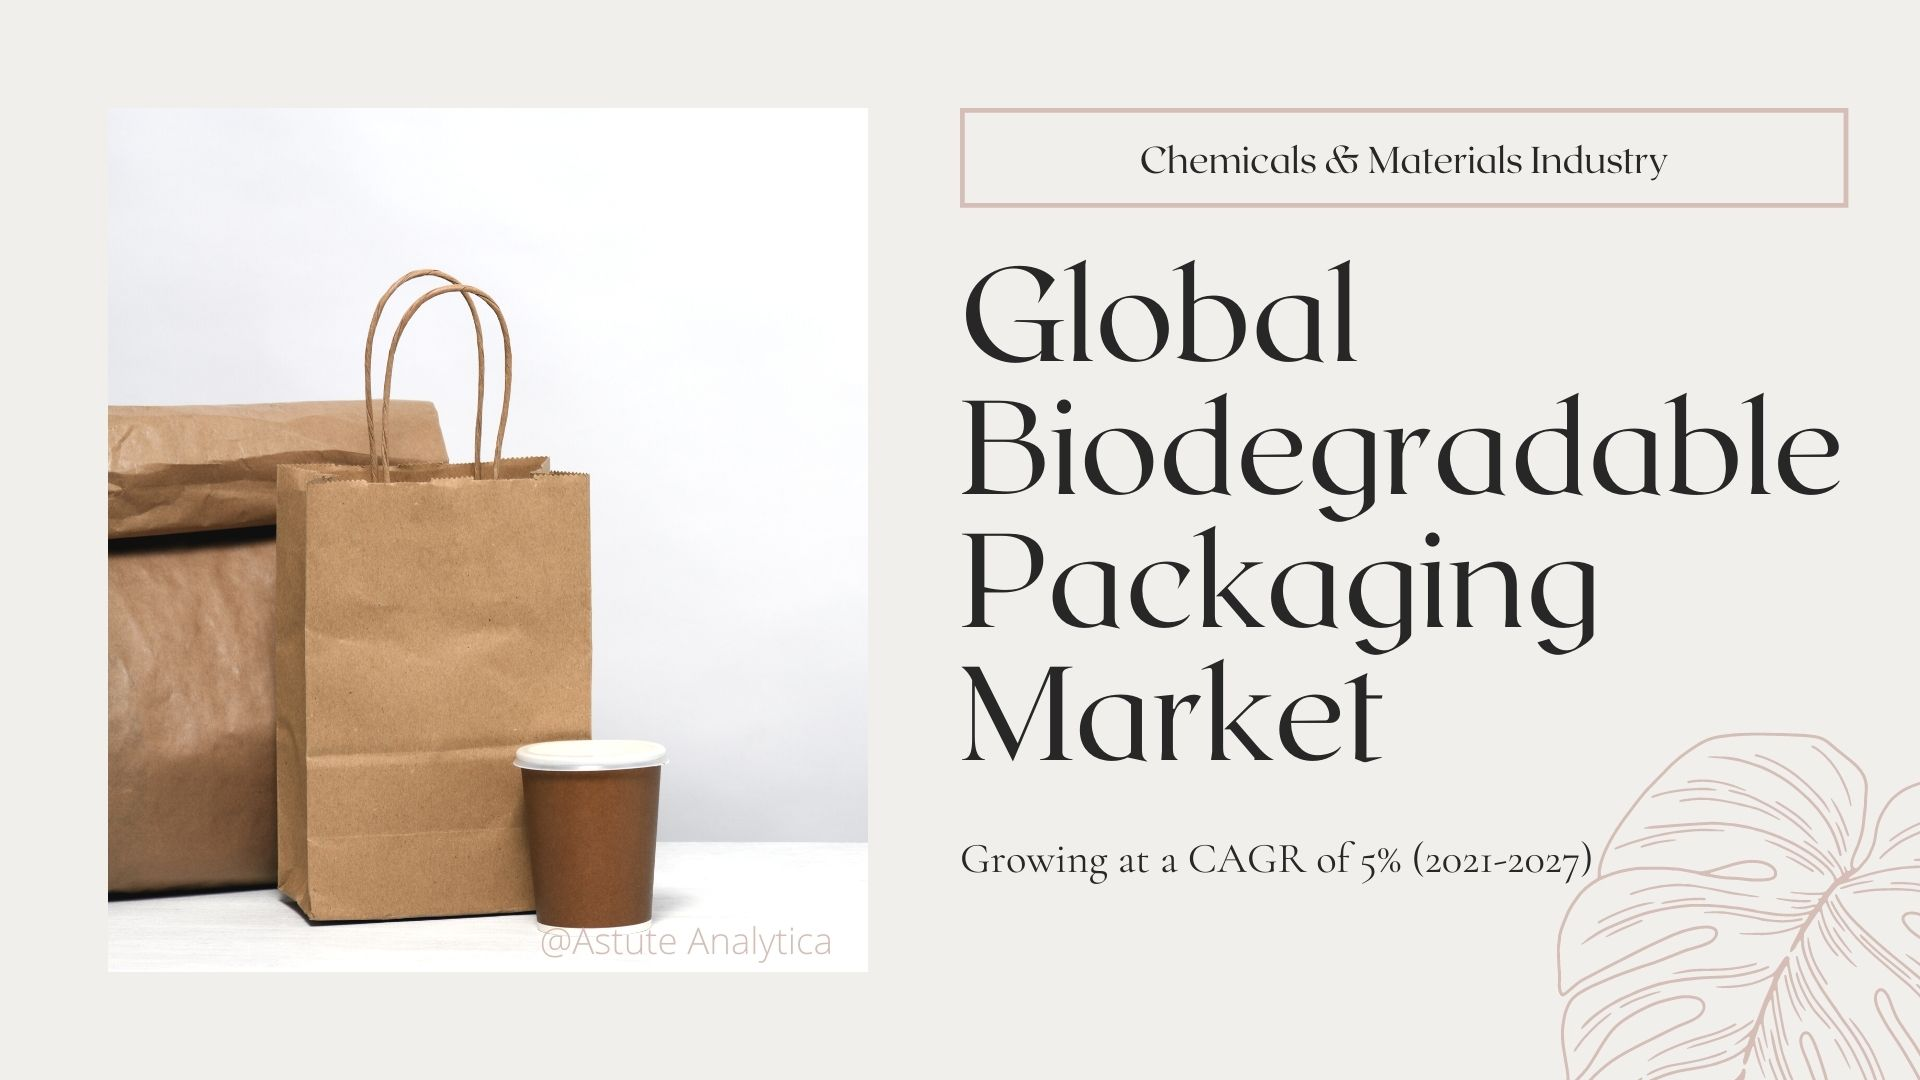 Biodegradable packaging market size, share, growth report explores industry trends & analysis 2027